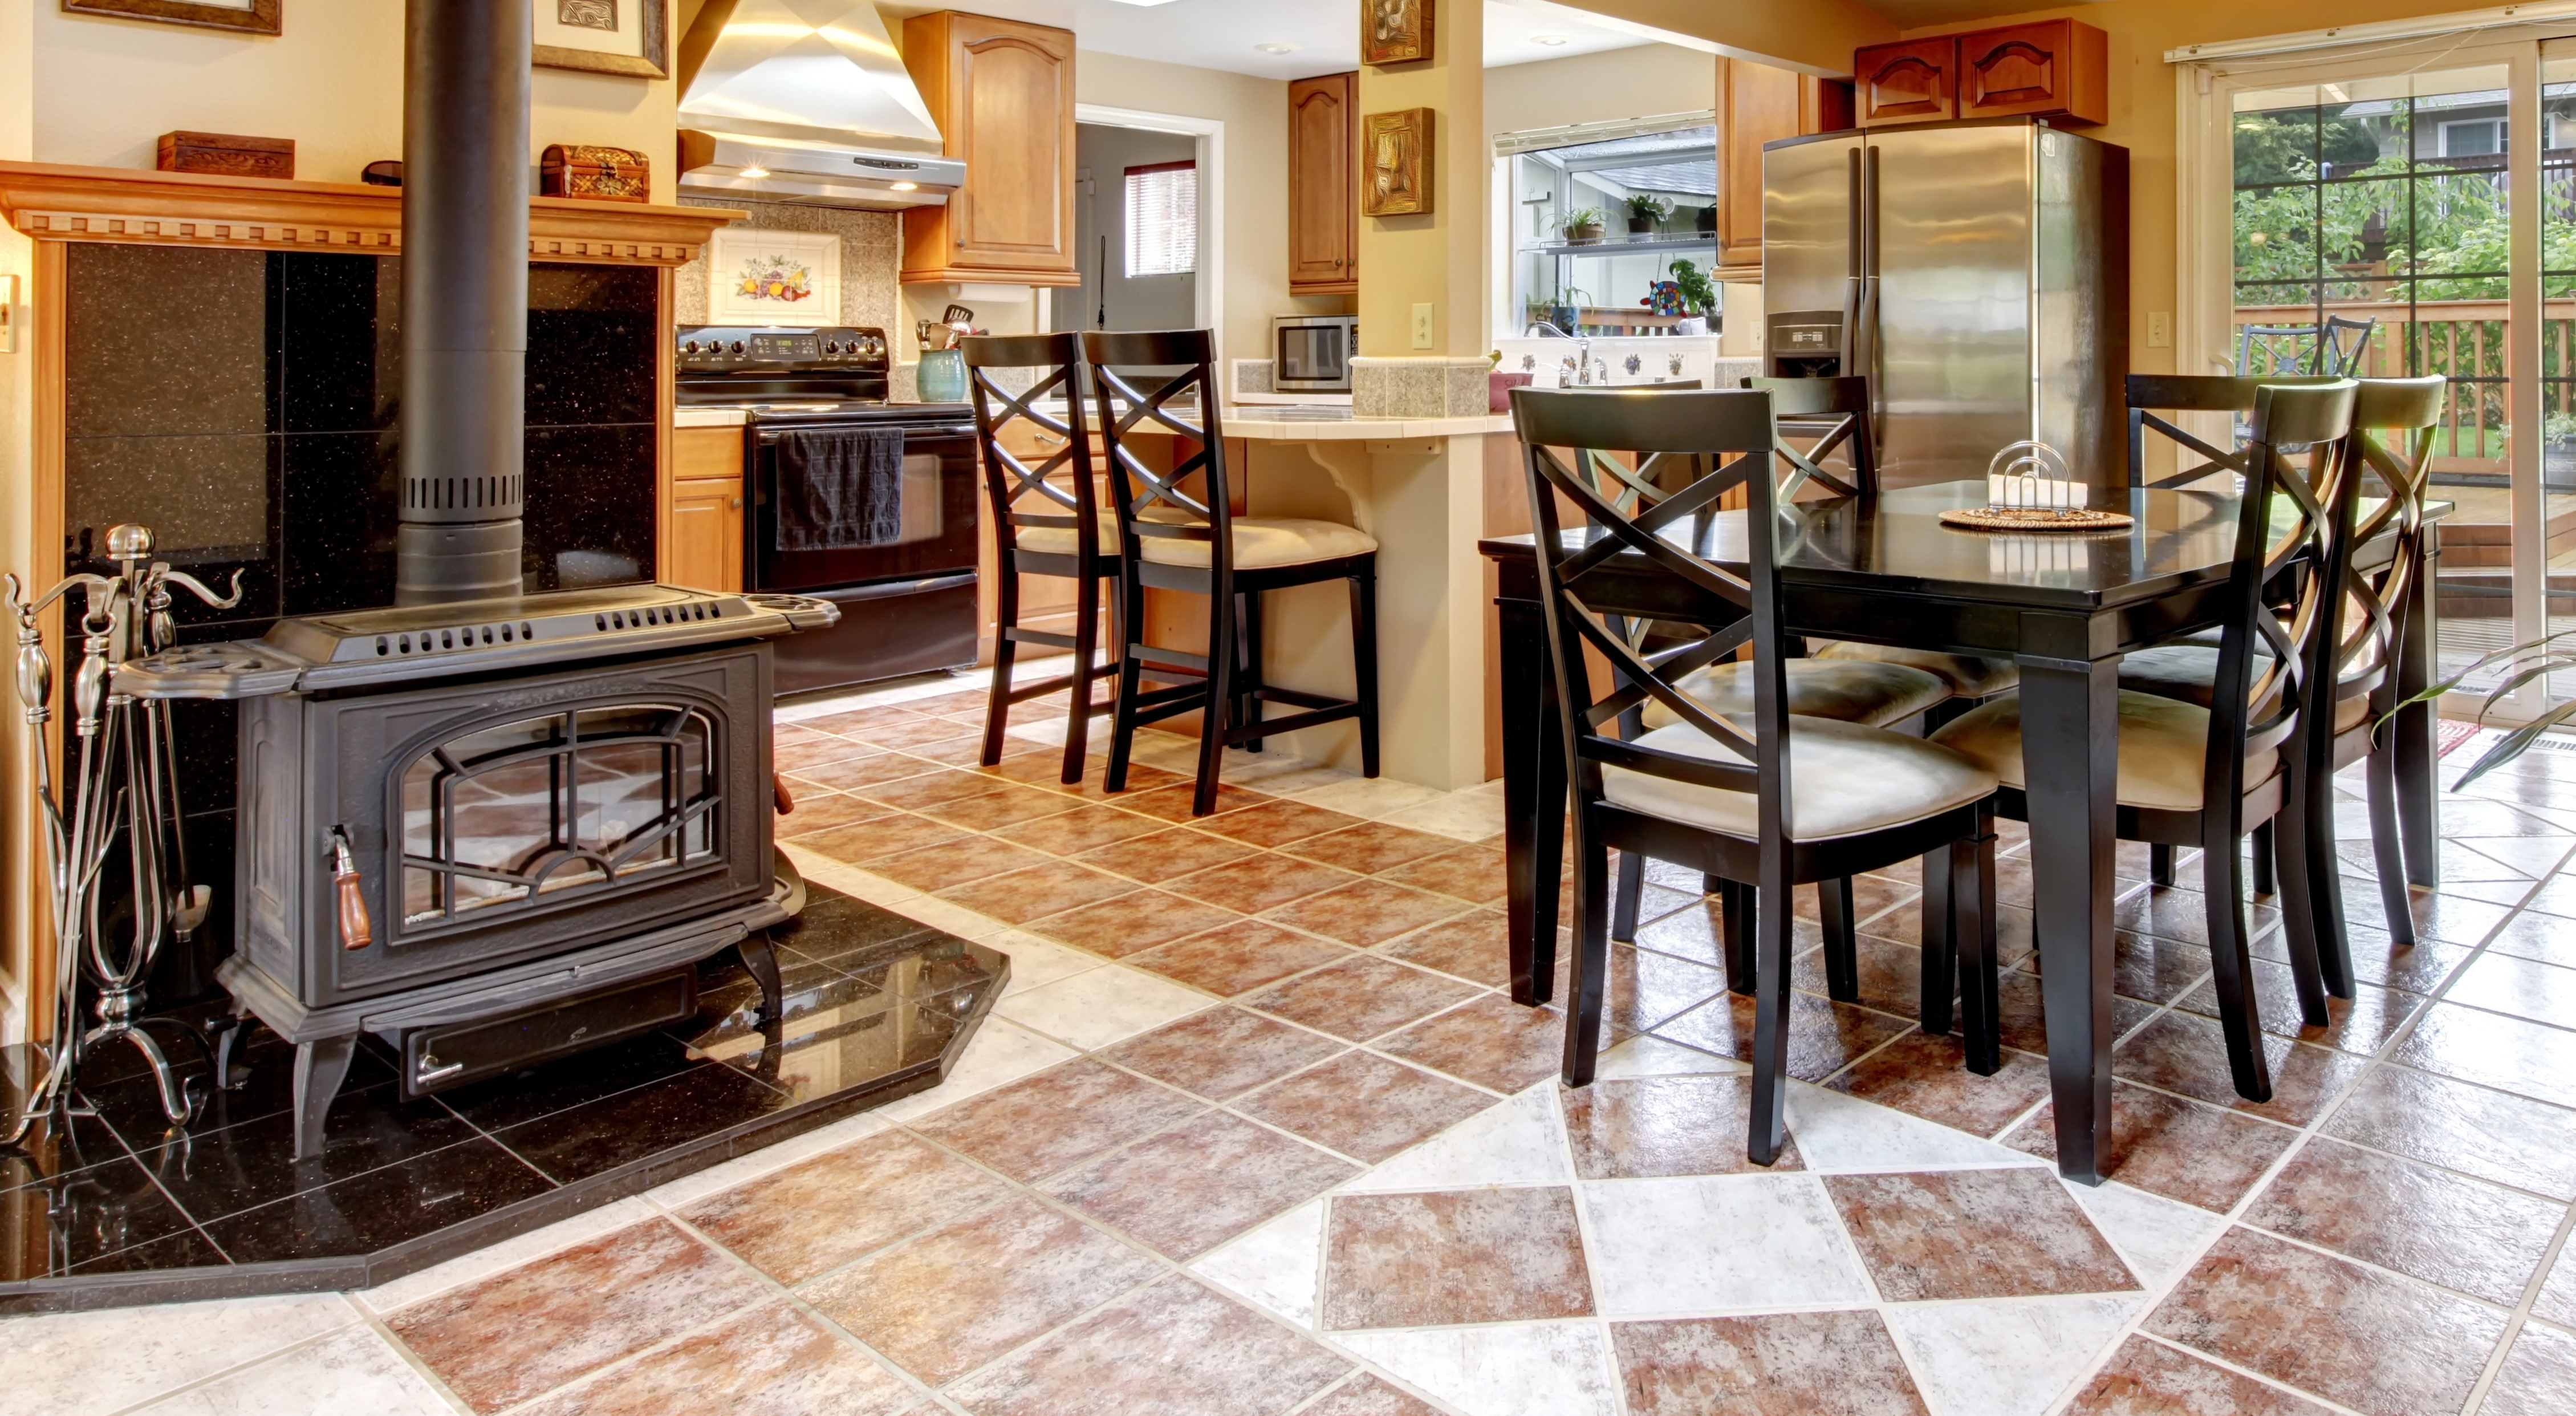 Purity Cleaning Professional Tile And Grout Cleaning